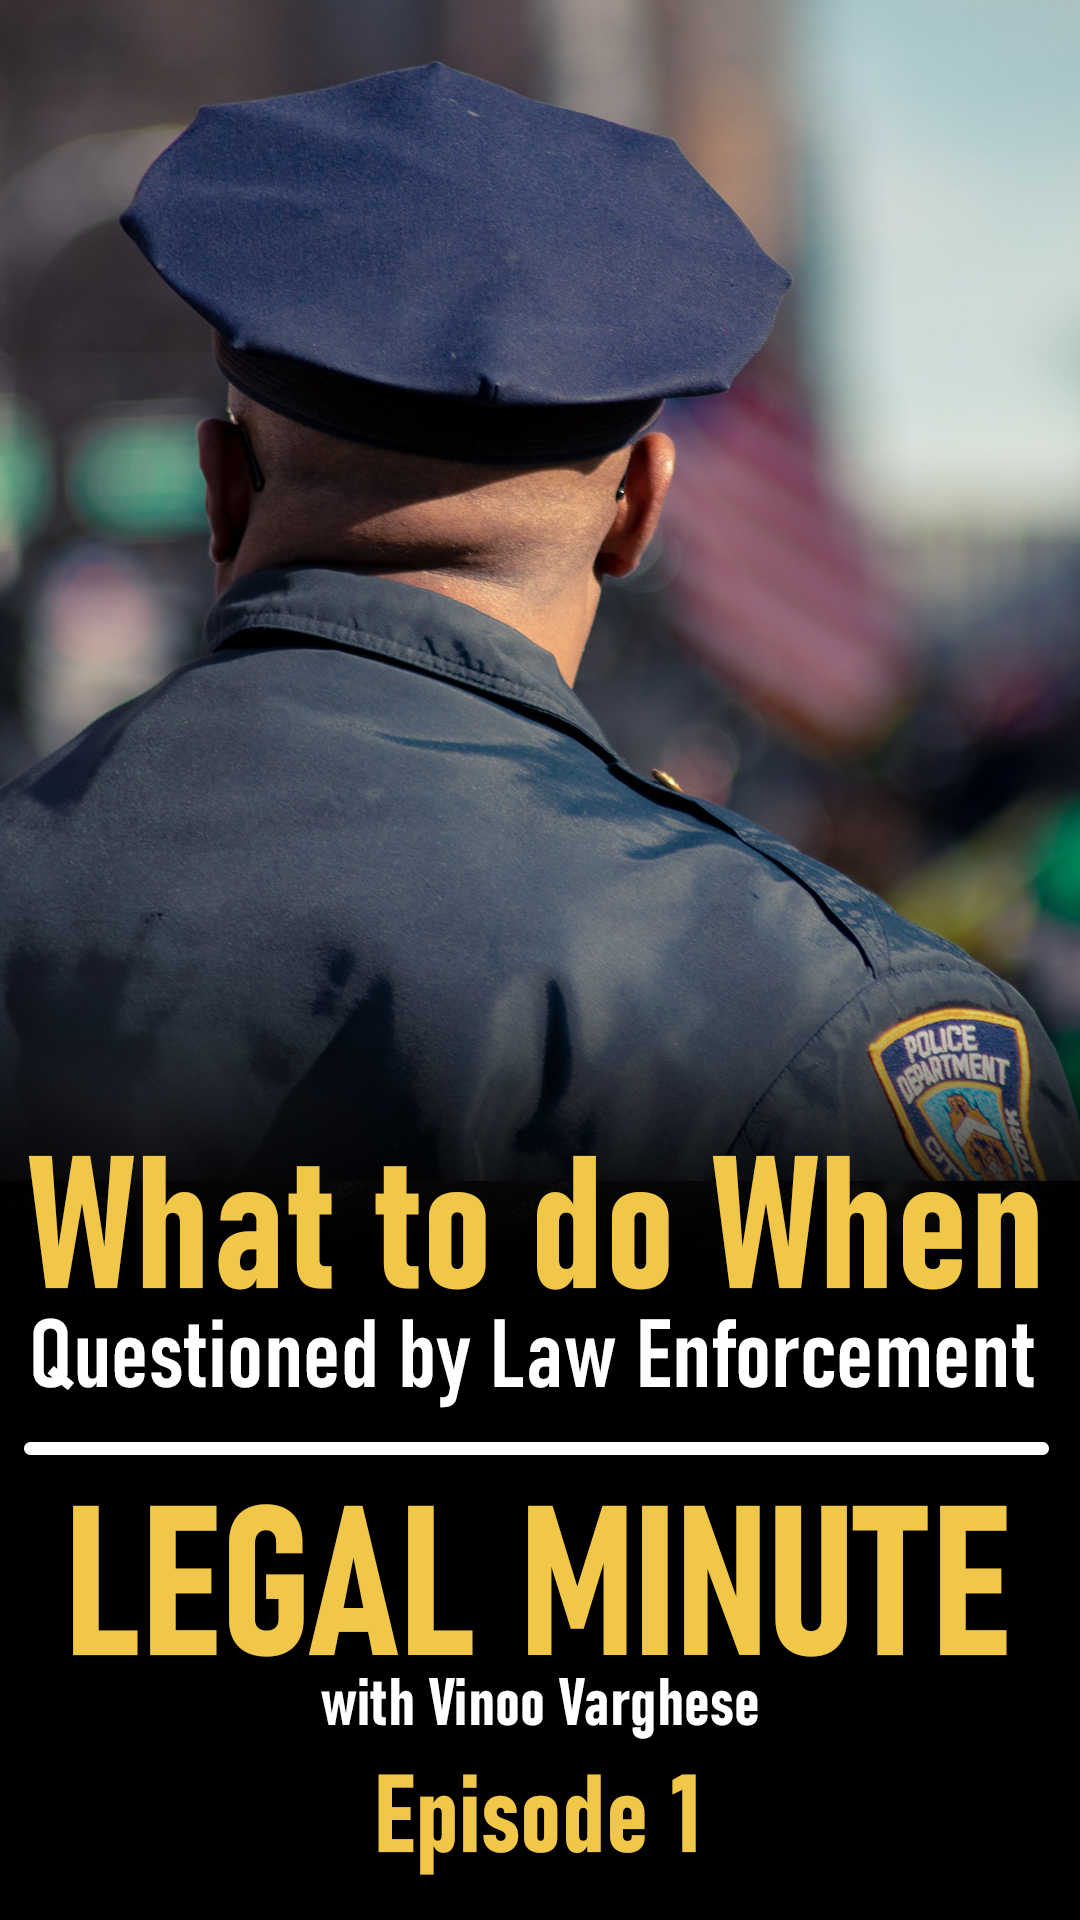 What to do when questioned by law enforcement